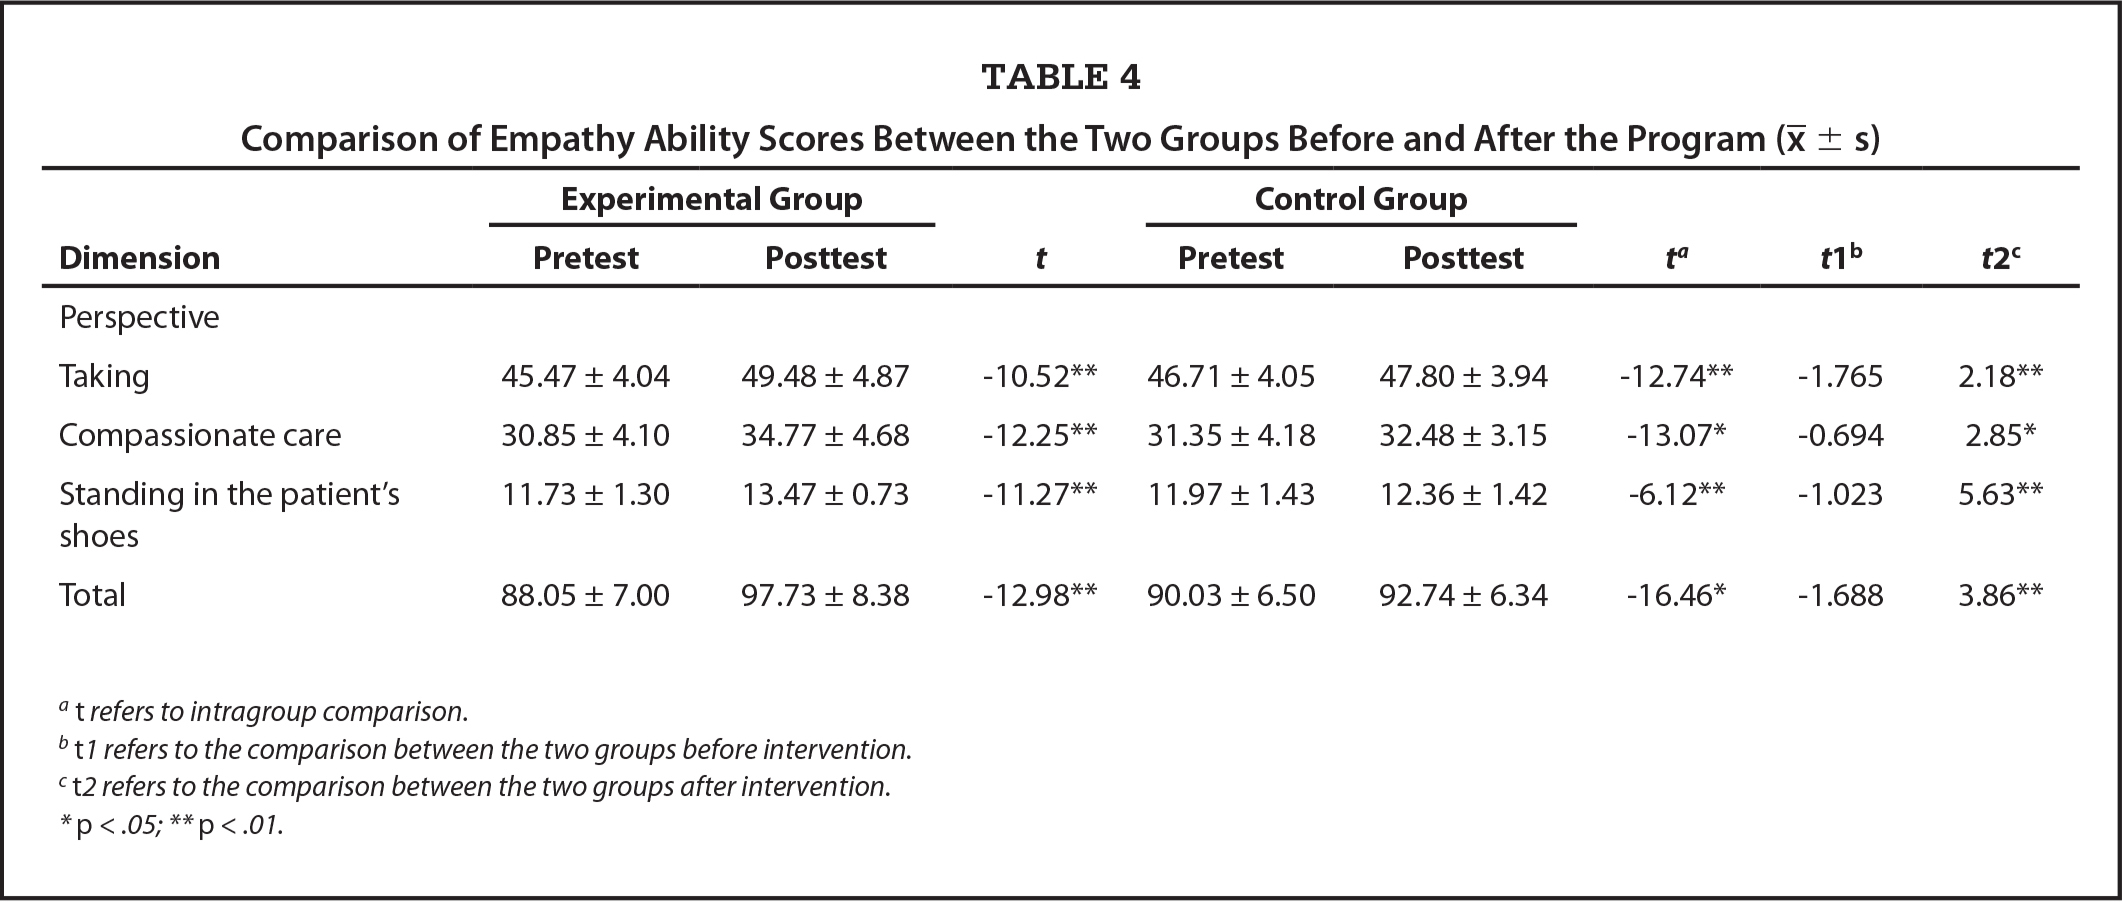 Comparison of Empathy Ability Scores Between the Two Groups Before and After the Program (χ̄±s)